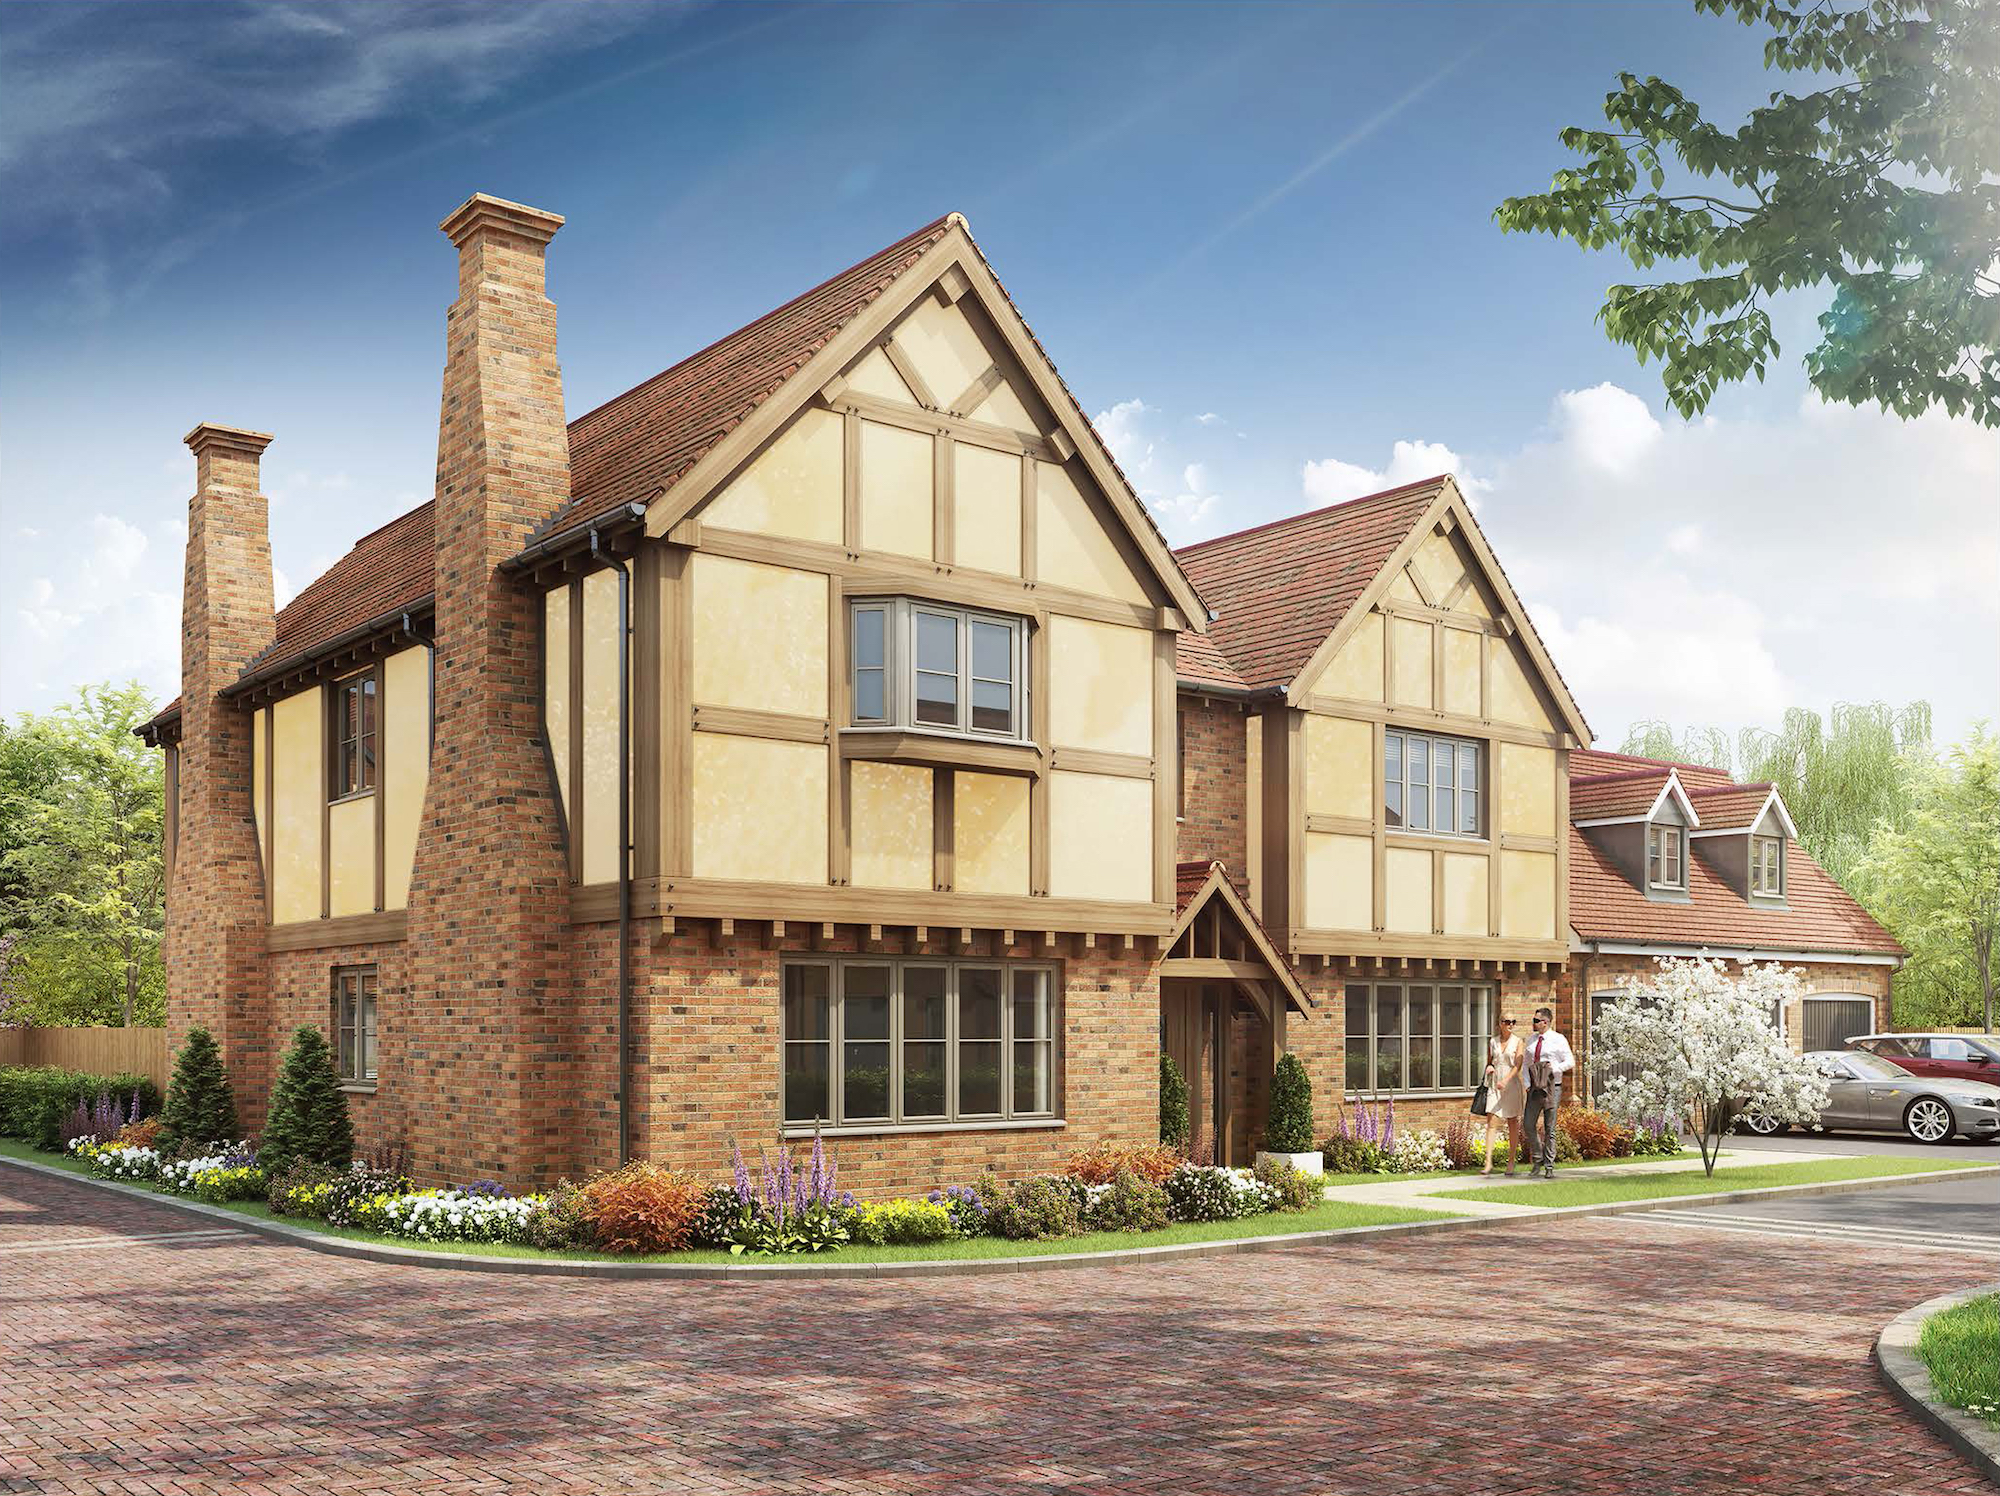 New House Designs Revealed for Tanworth-in-Arden